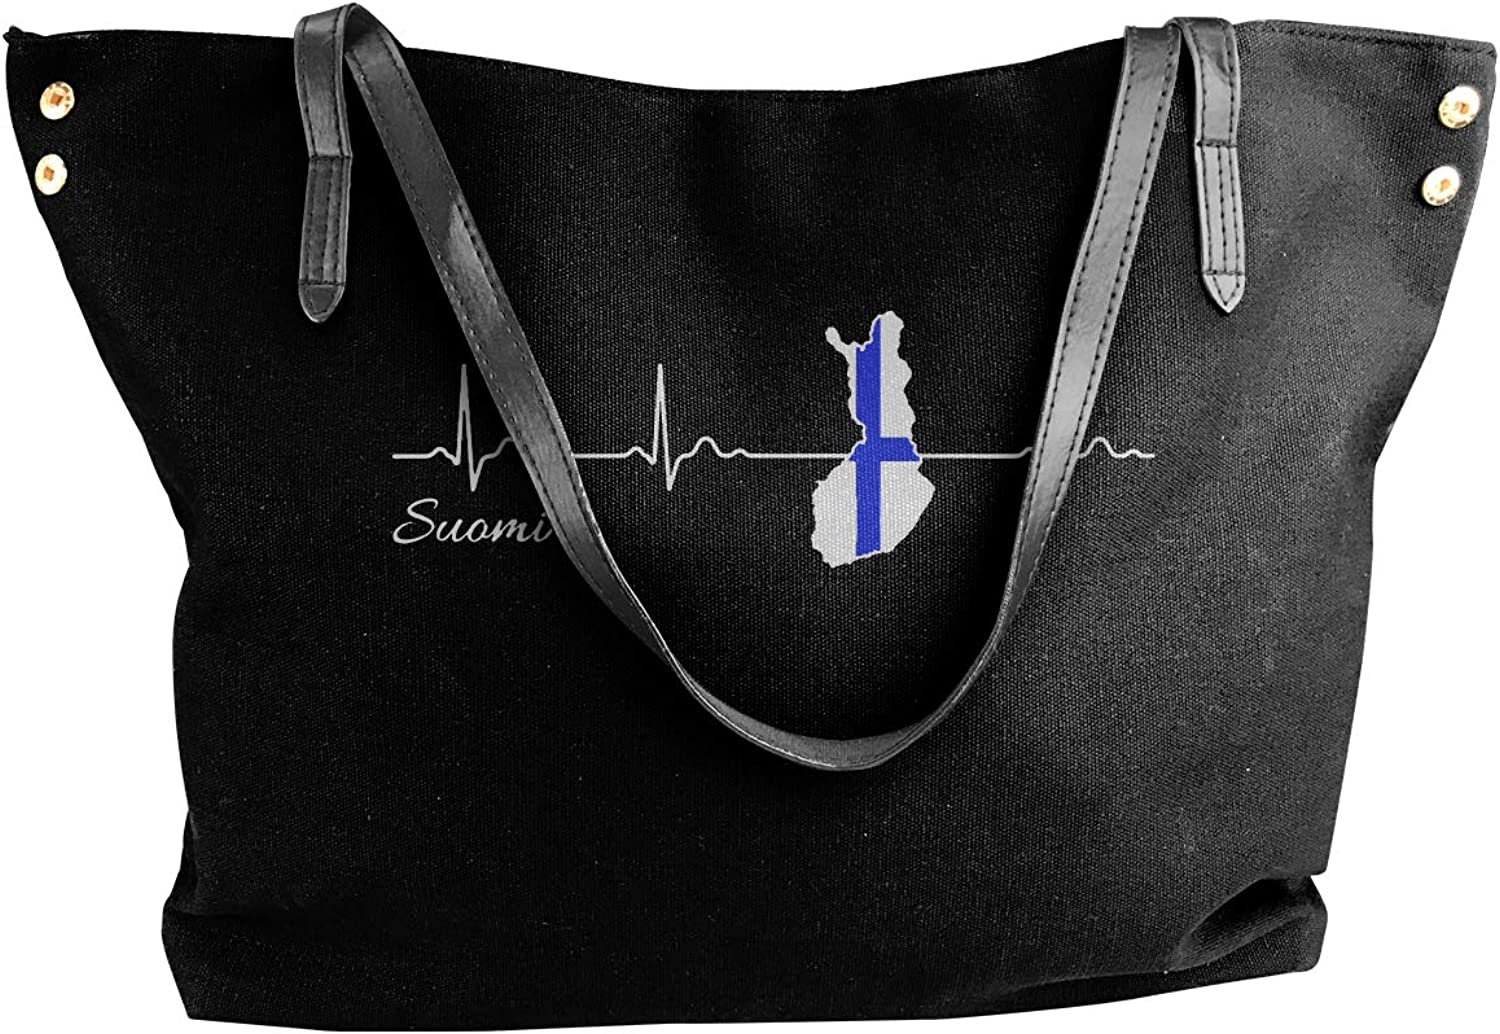 Finland Suomi Heartbeat Women'S Casual Canvas Shoulder Bag For Work Work Bag